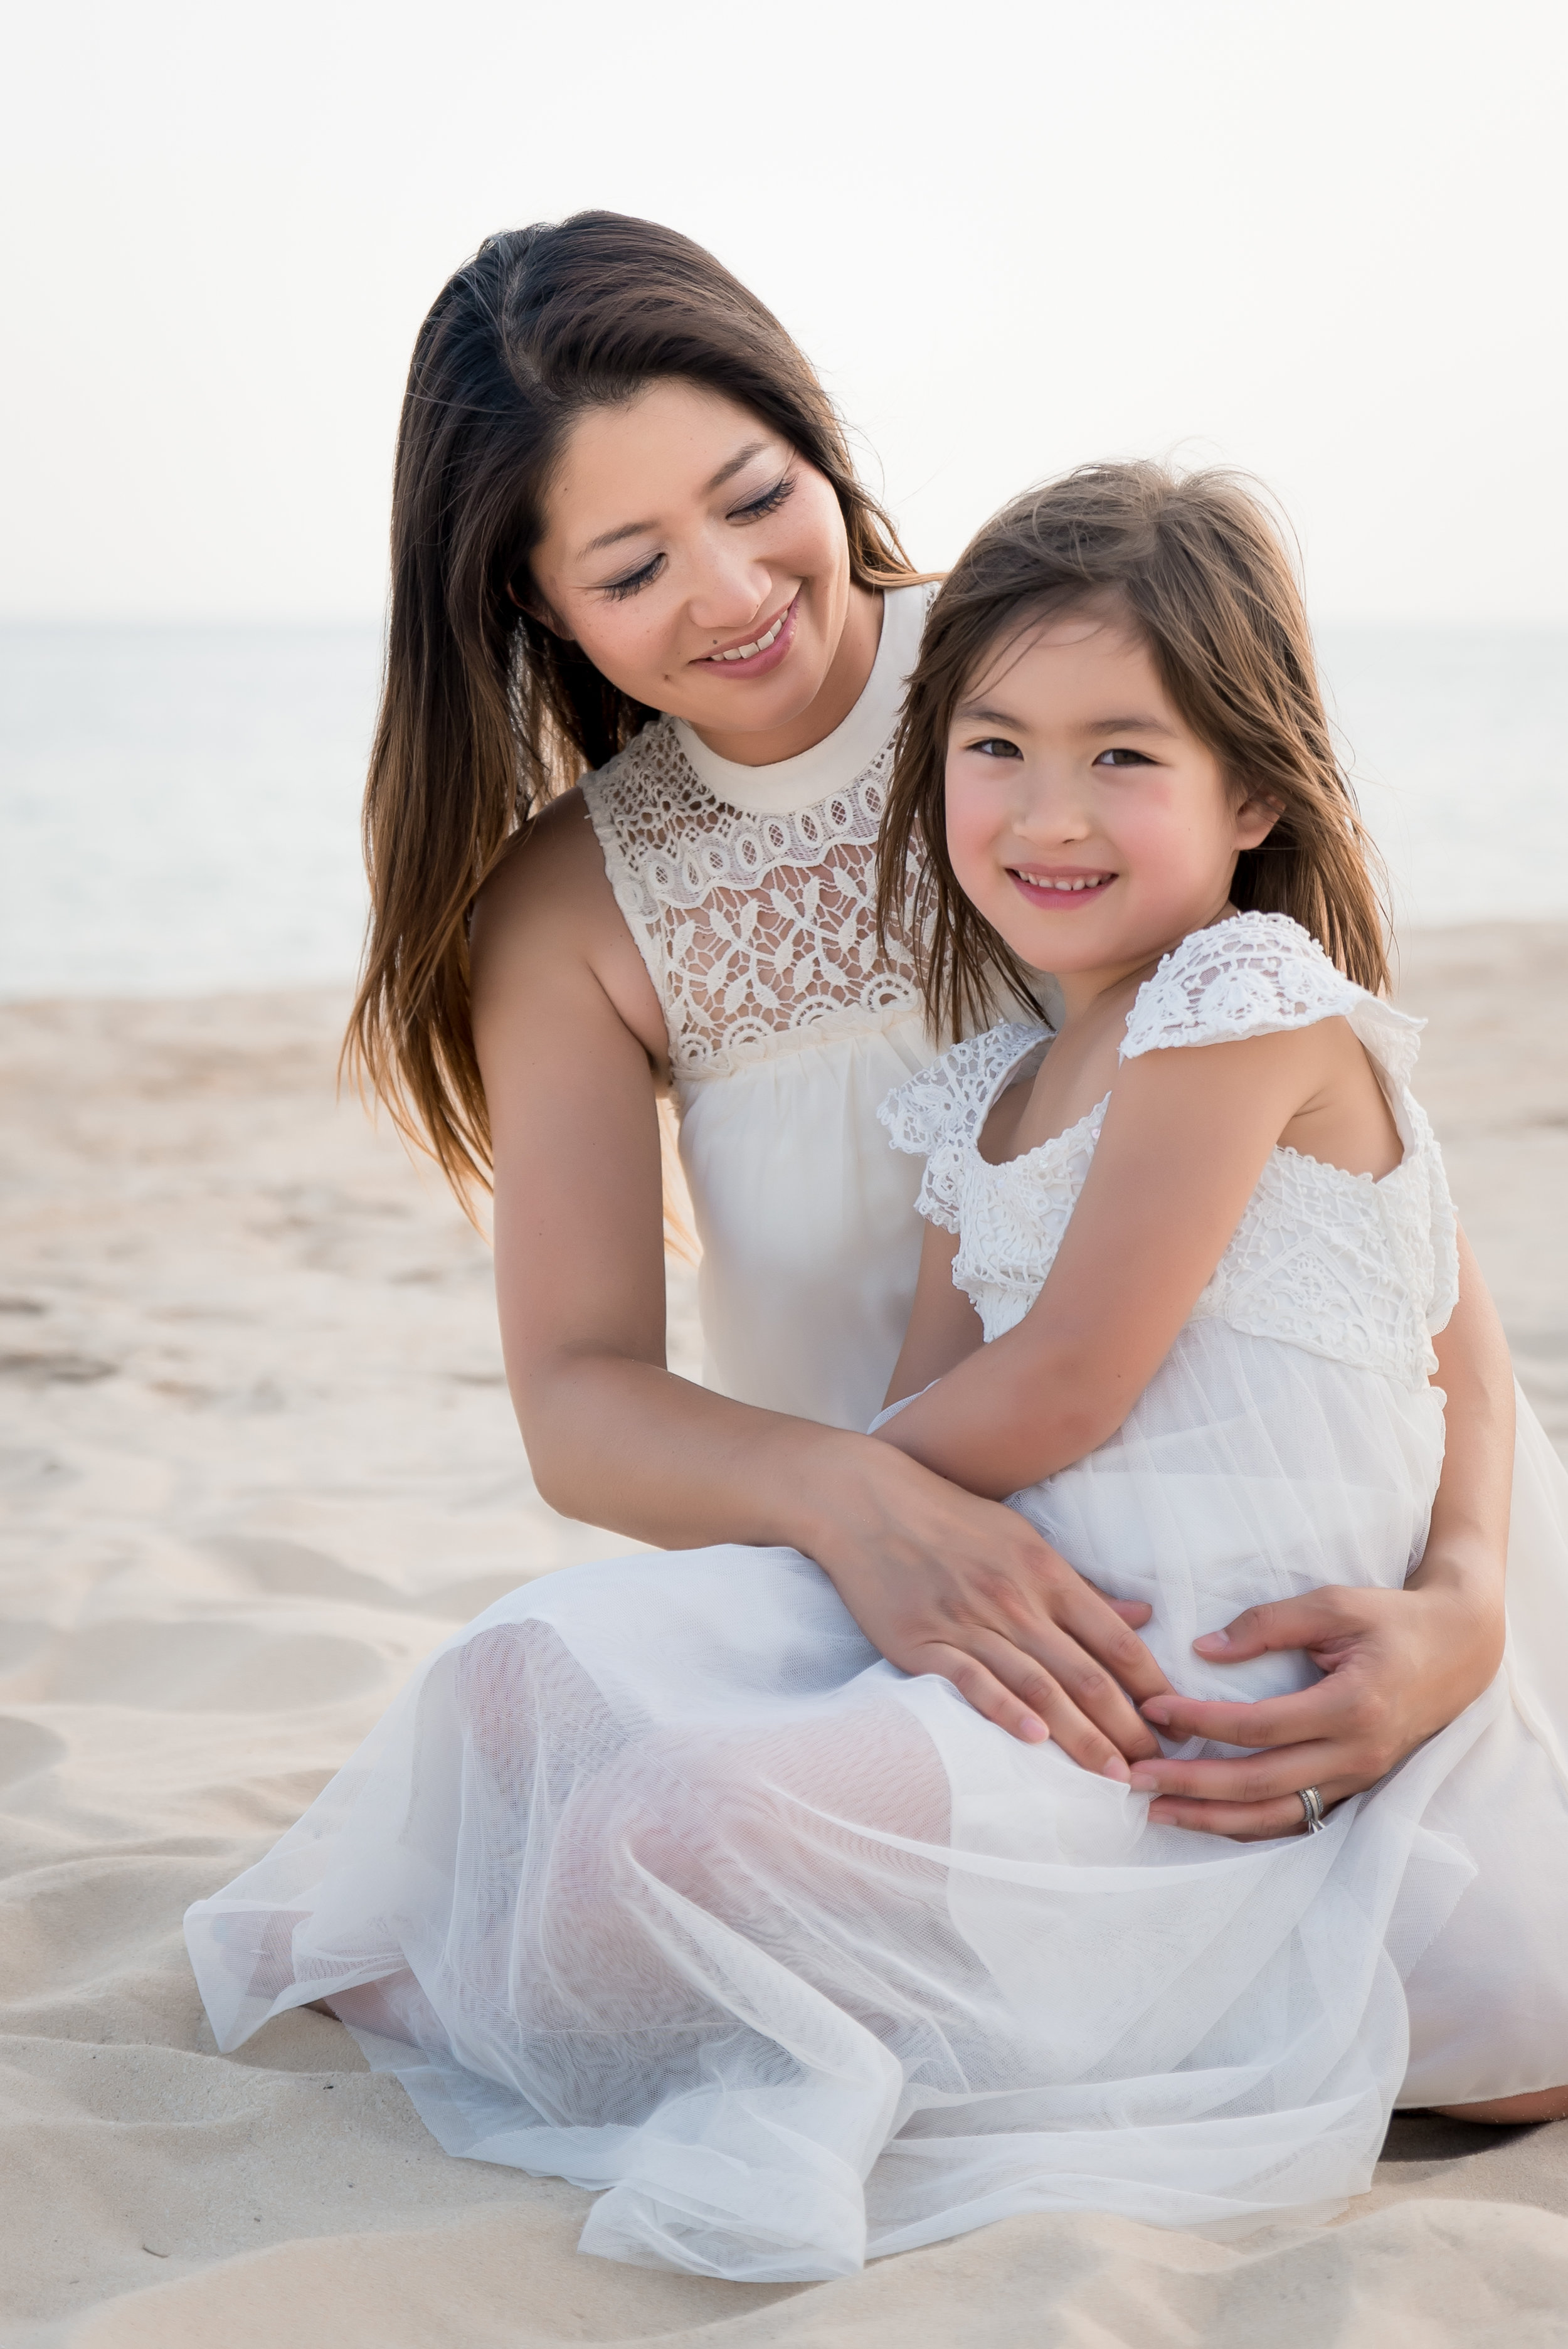 Family and portrait photography victoria bc: Mother daughter beach session